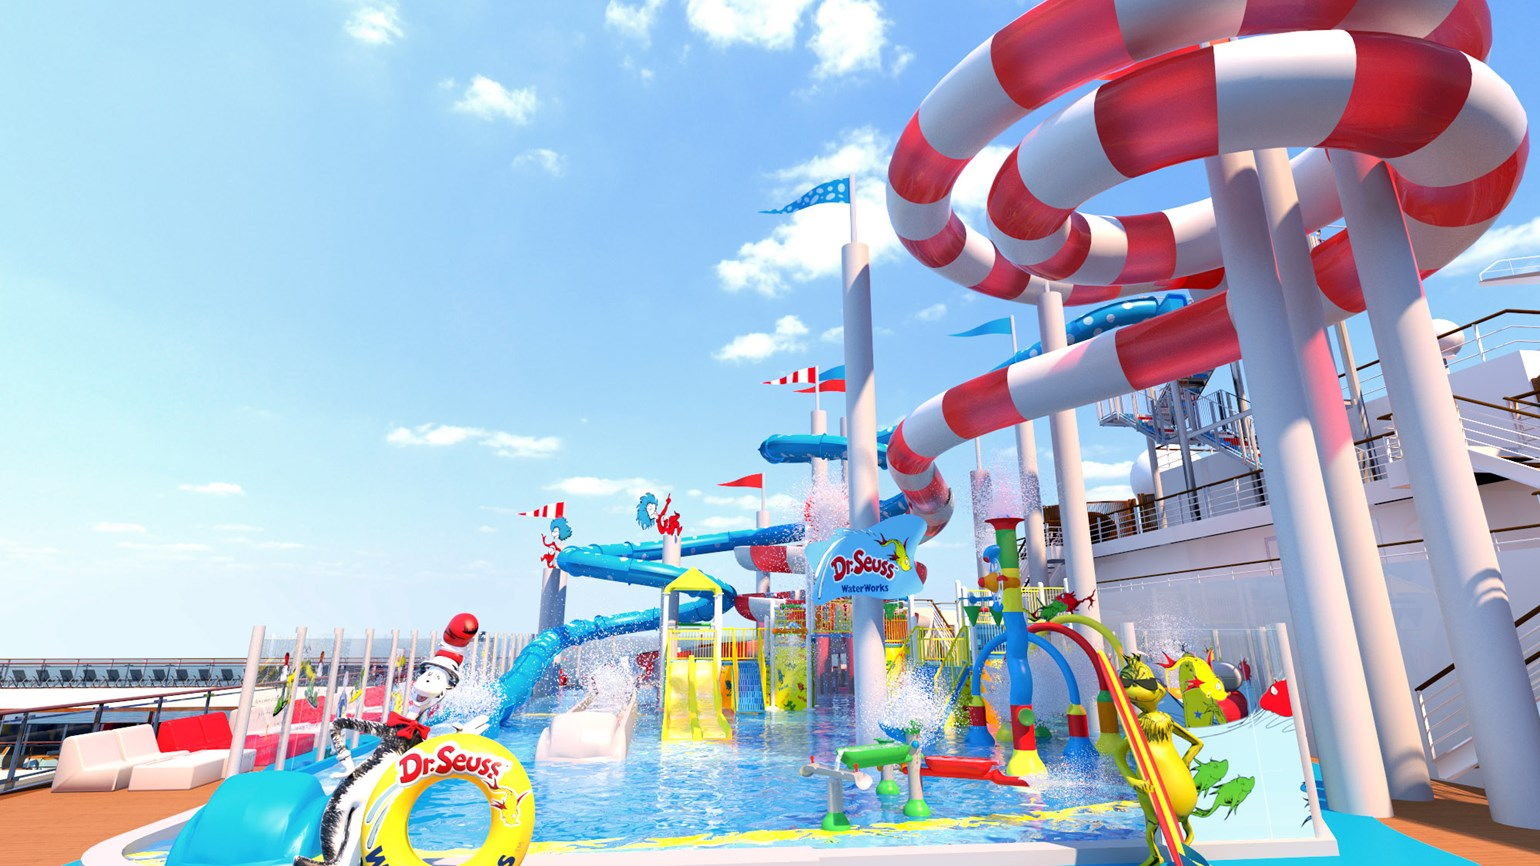 Good fun that is funny: Carnival Horizon to have Dr. Seuss water park